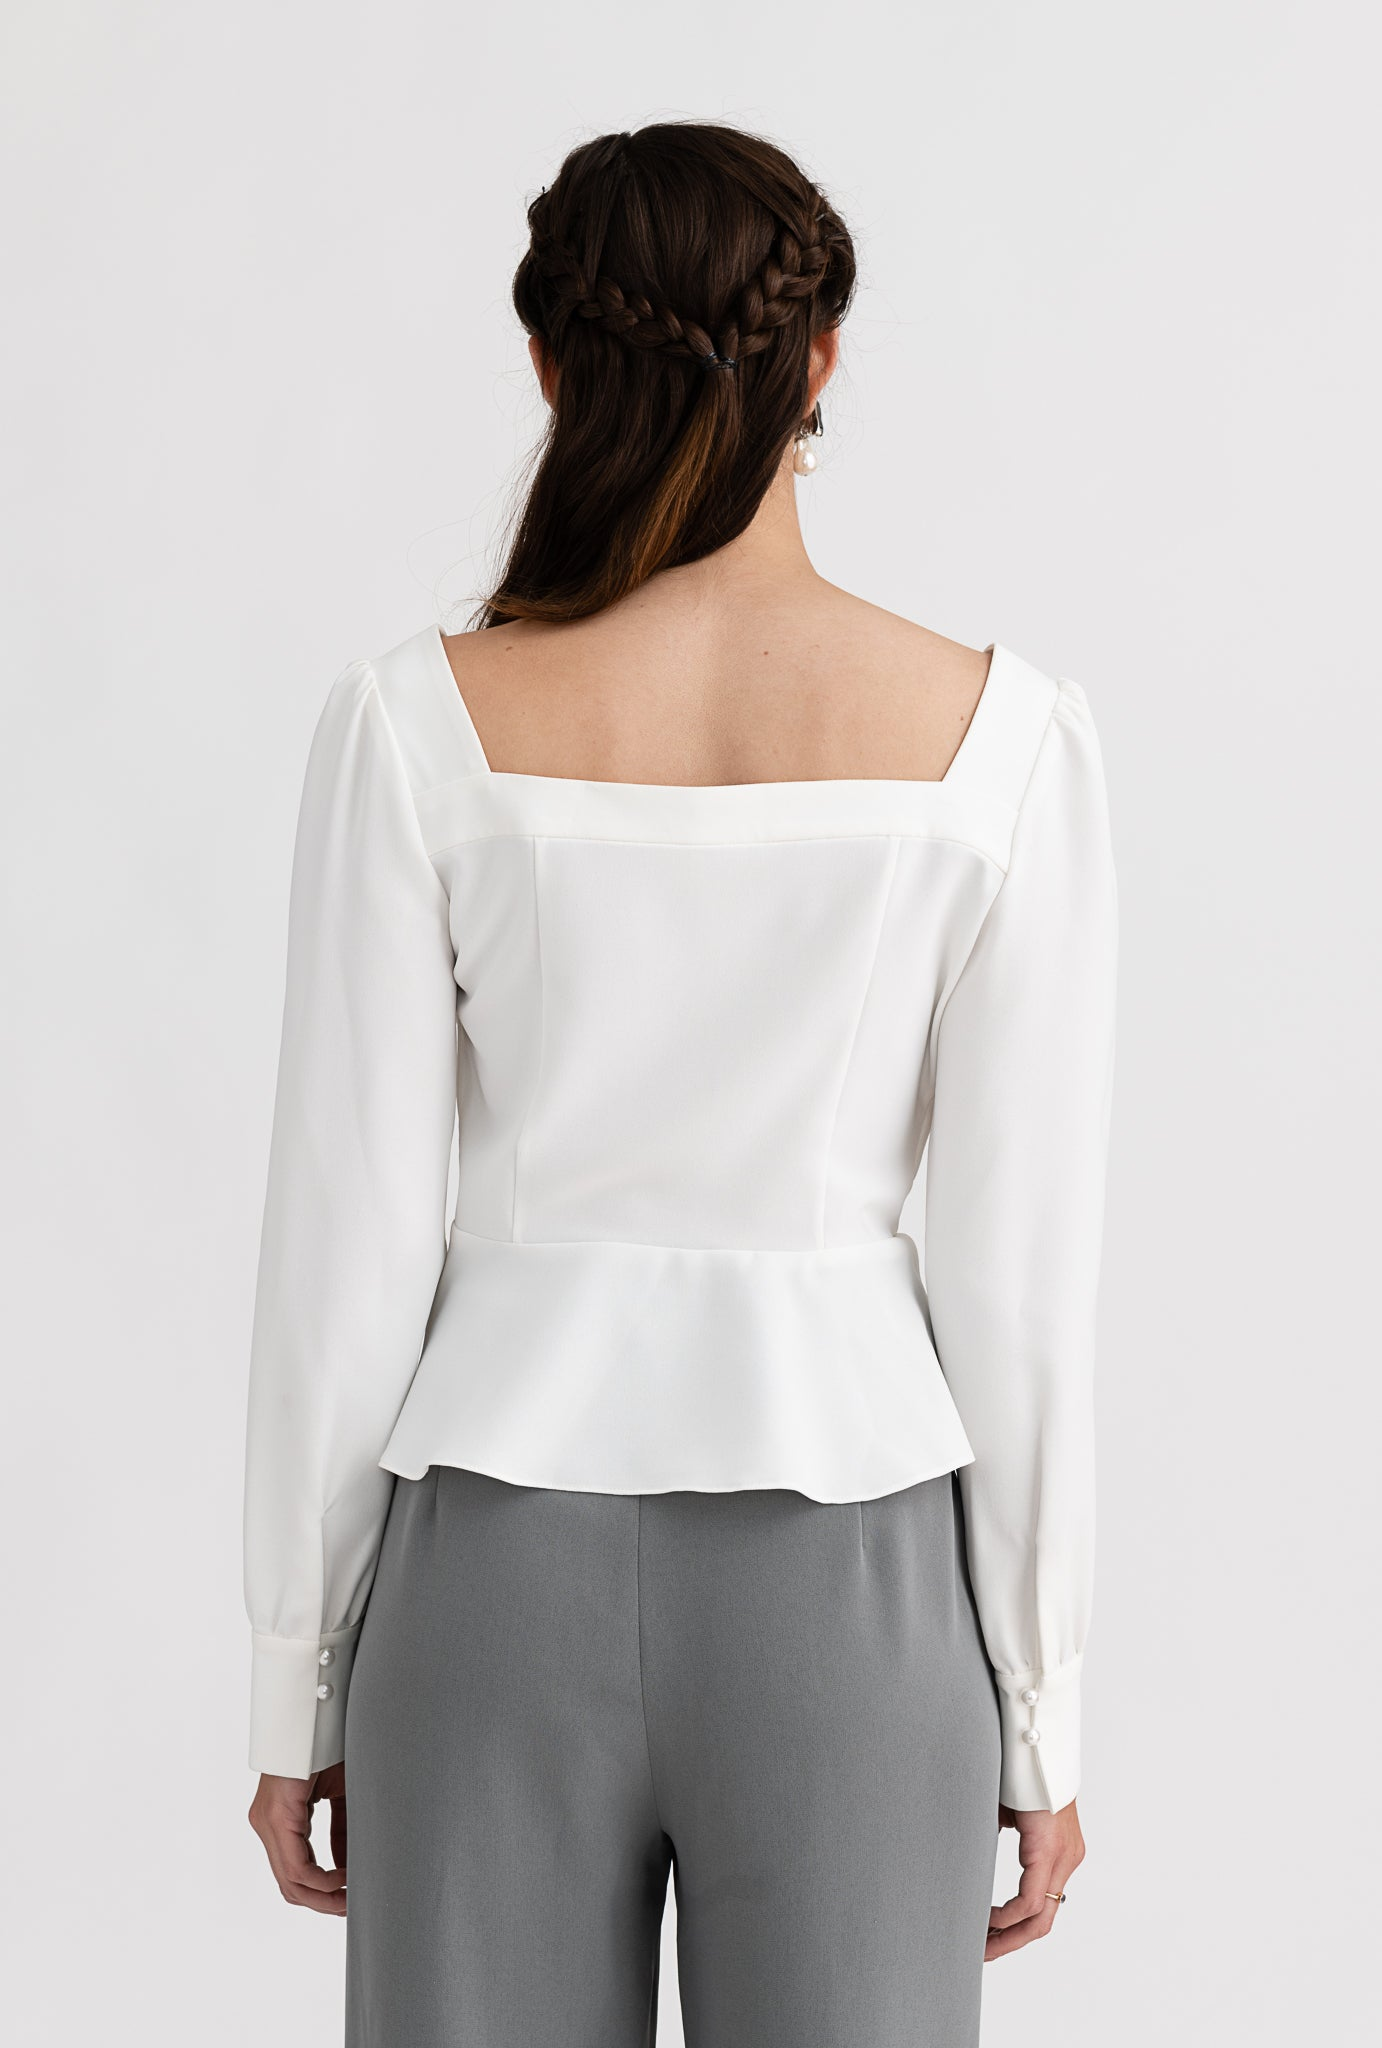 Viola Top - Ivory - White pearl- Button square neck blouse - Petite Studio NYC